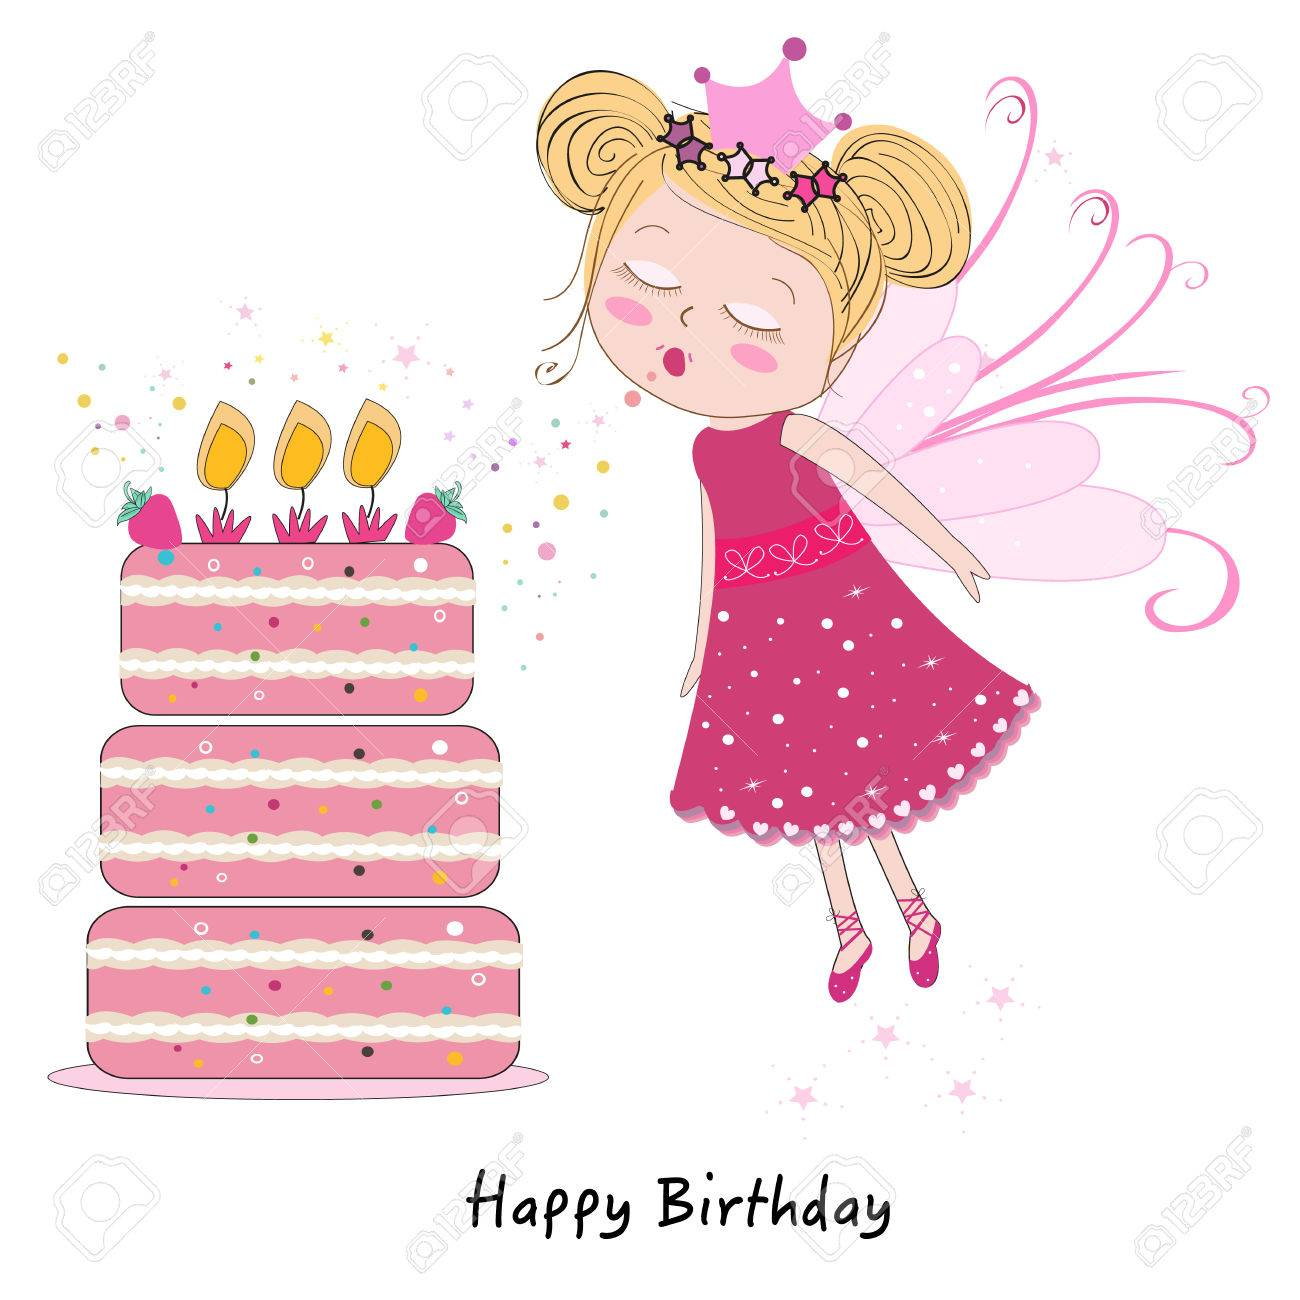 Fairy girl blowing out candles with happy birthday cake - 36833595